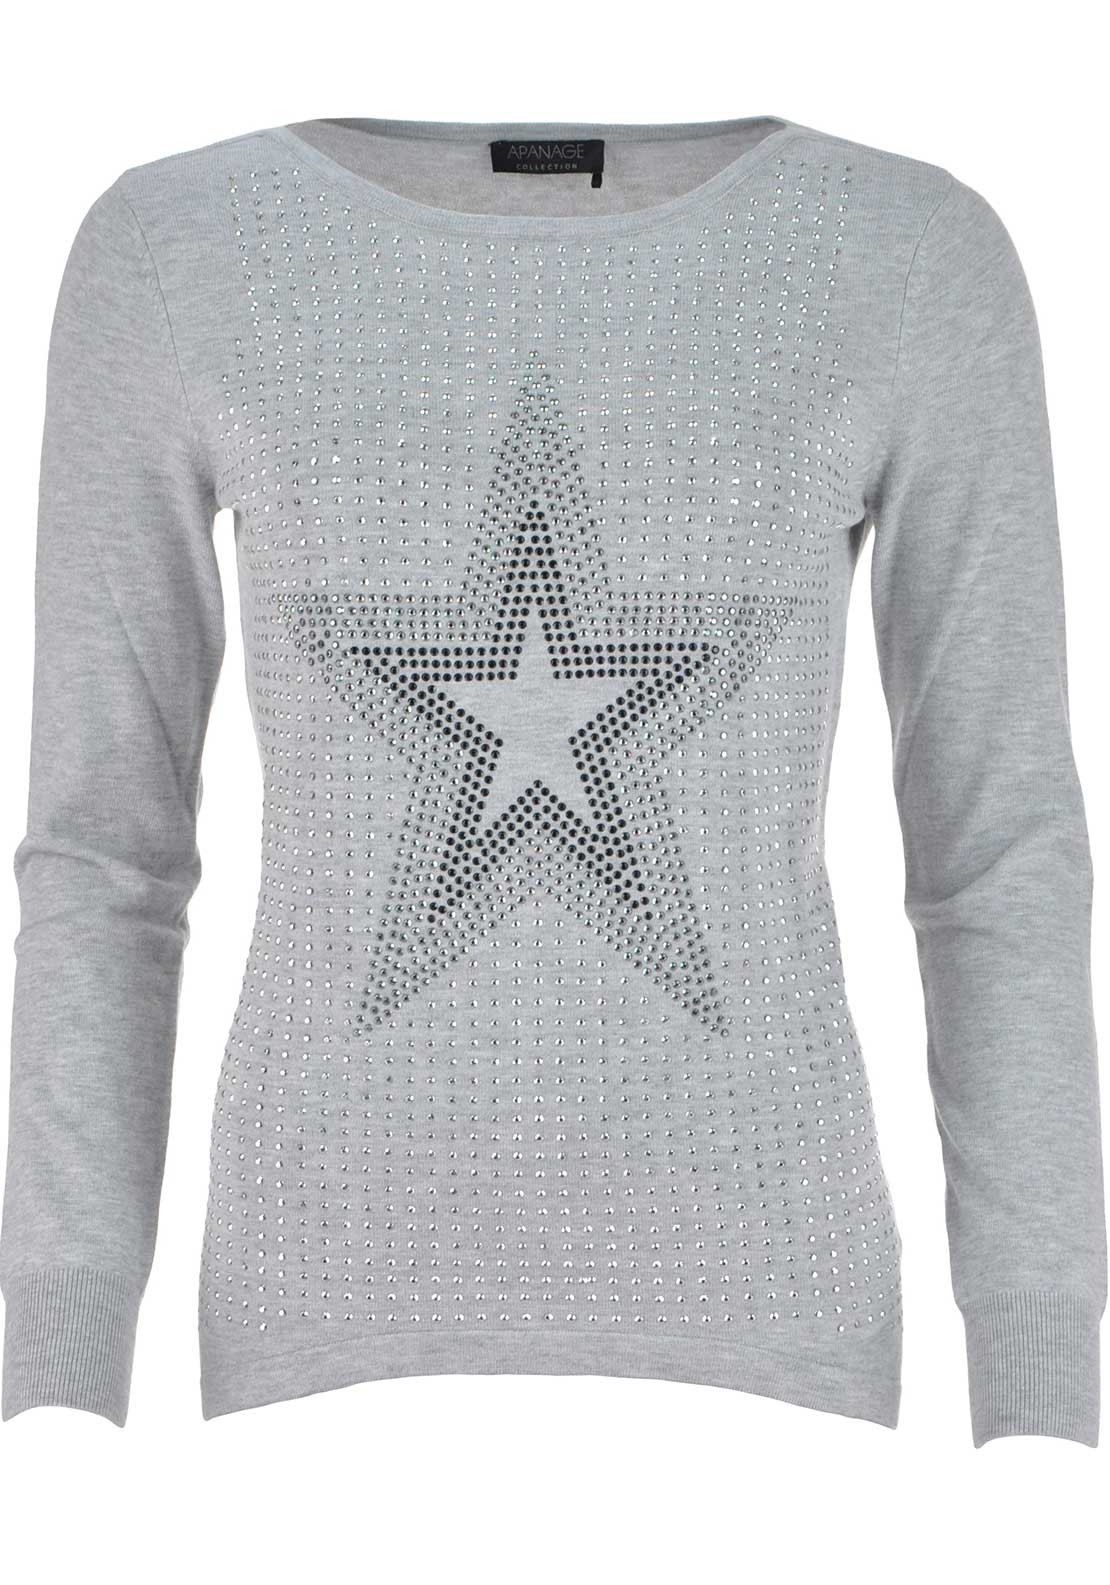 Apanage Embellished Star Print Long Sleeve Sweater Jumper, Grey